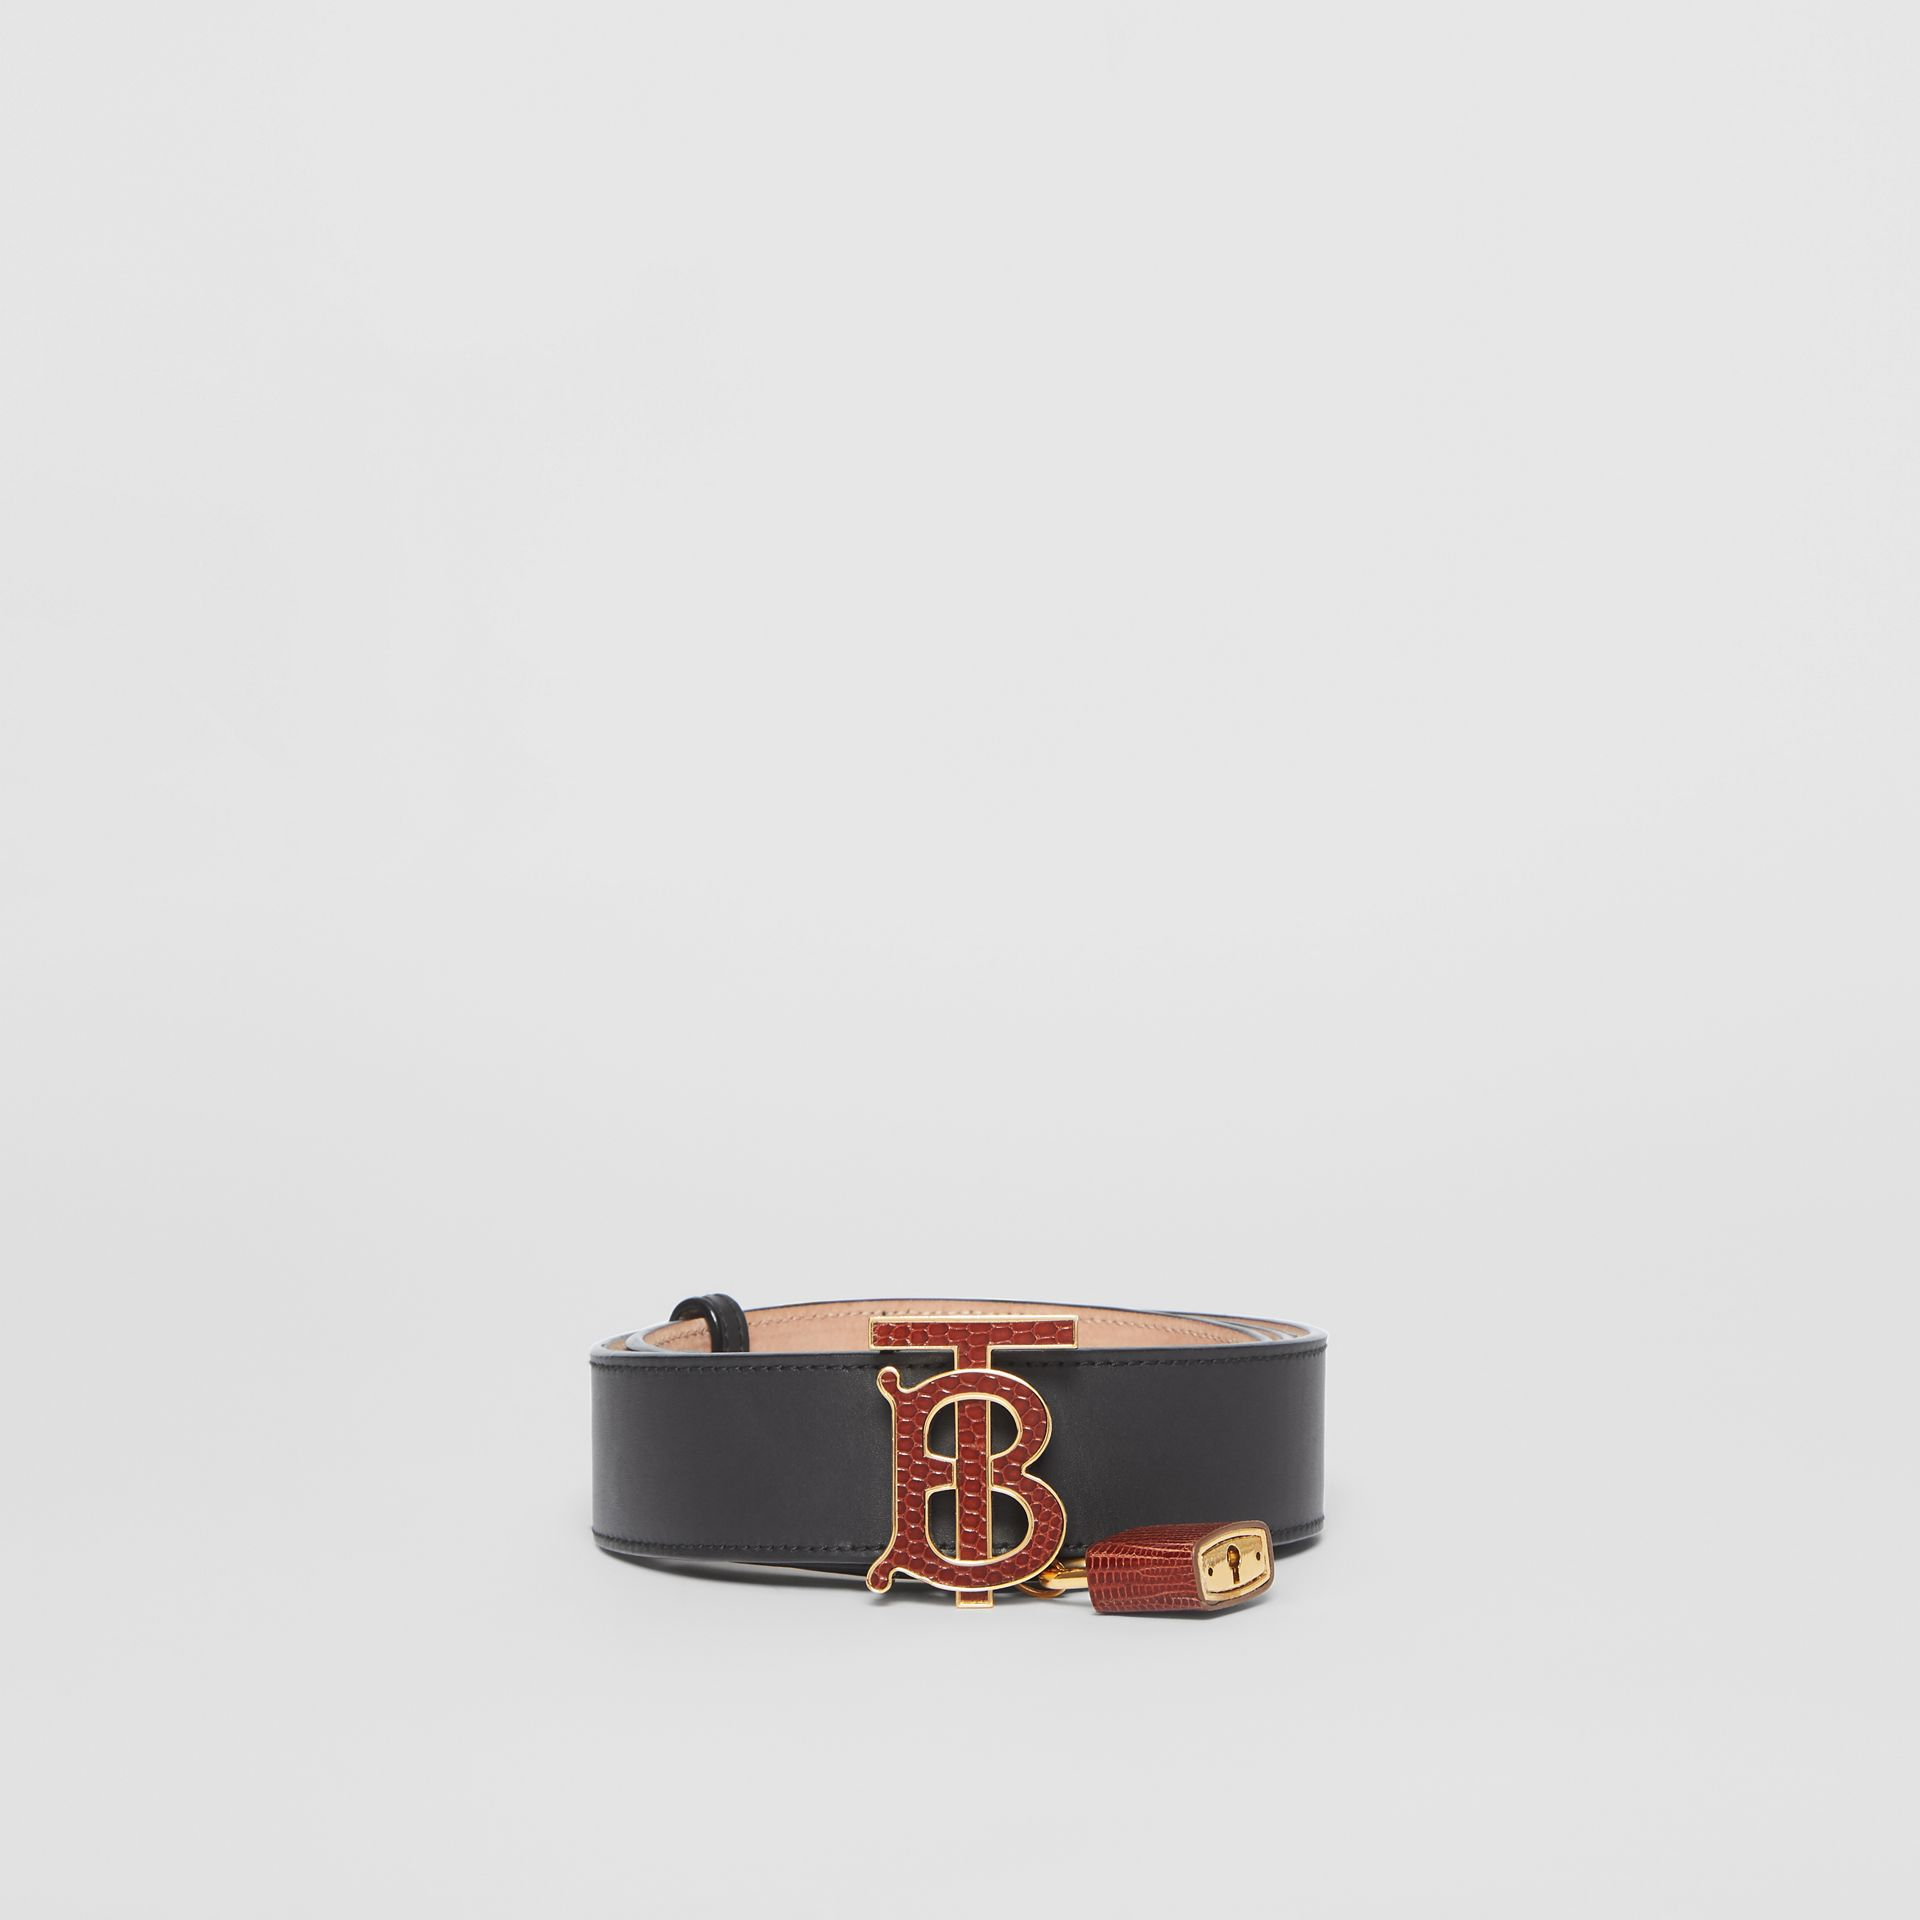 Padlock Detail Monogram Motif Leather Belt in Black/tan - Women | Burberry Singapore - gallery image 3